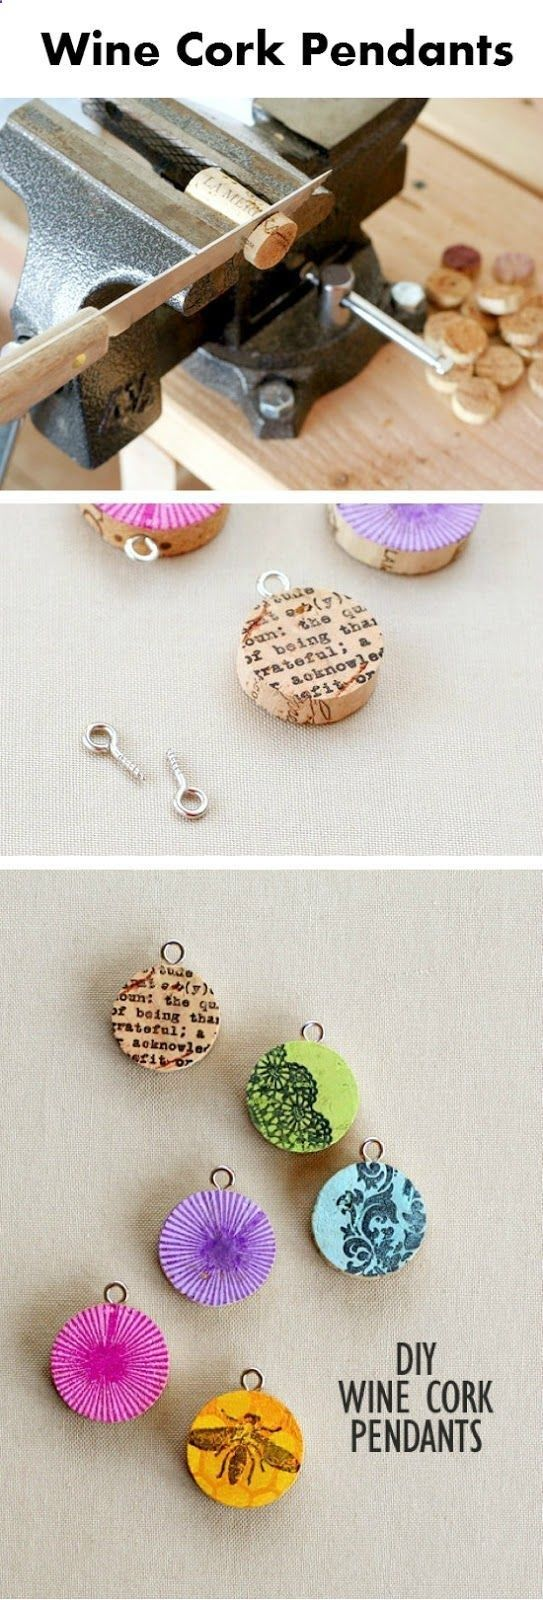 Wine Corks - IDEA: Wine Cork Pendants... I actually think these would make really cute Christmas tree ornaments.